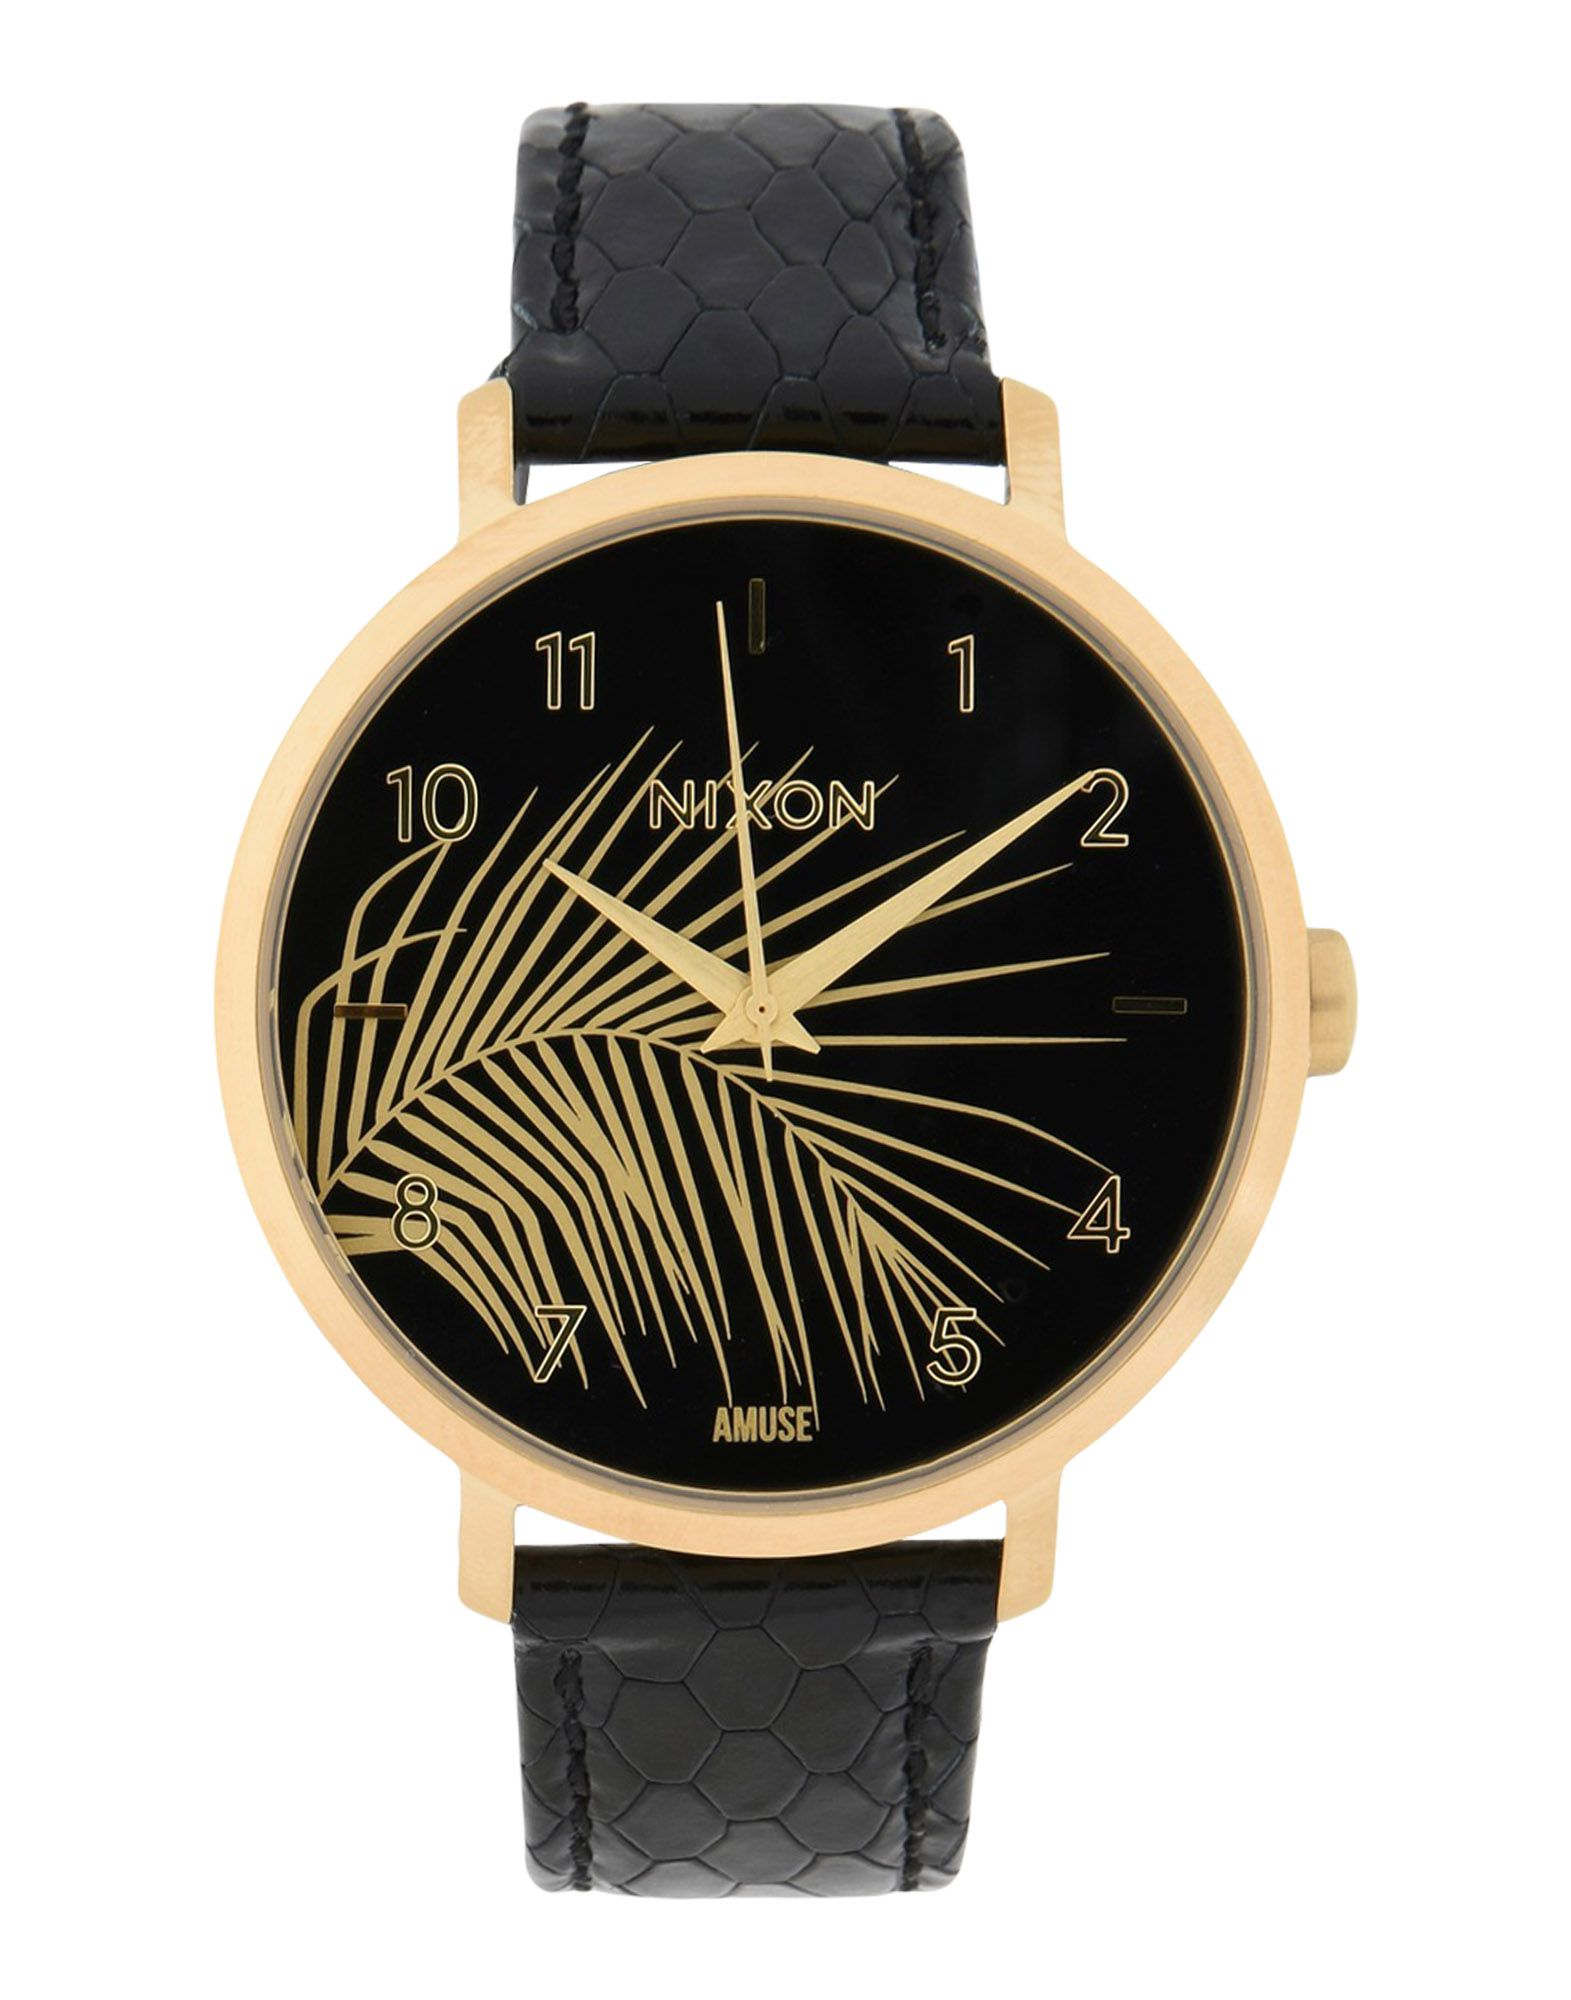 Orologio Da Polso Nixon A1091 Arrow Leather - Donna - Acquista online su